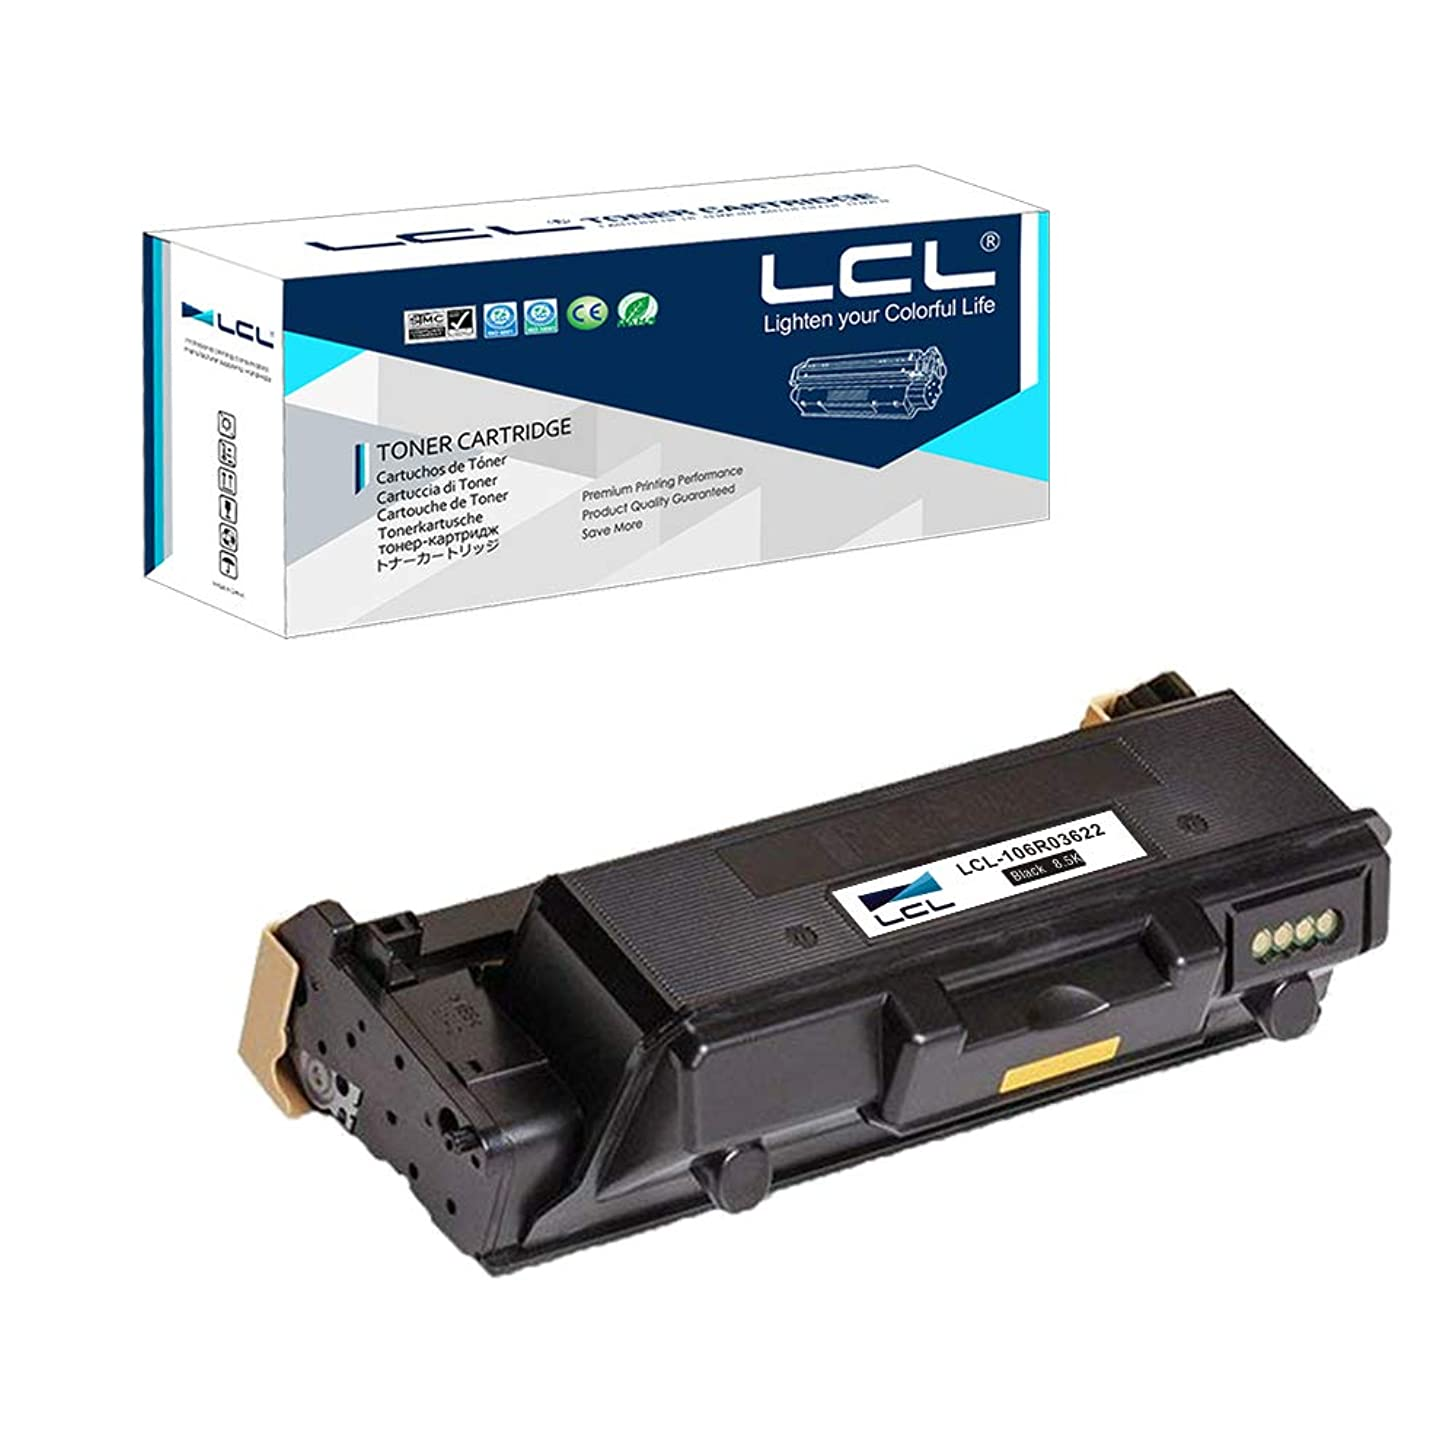 LCL Compatible Toner Cartridge Replacement for Xerox WorkCentre 3335 3345 Phaser 3330 106R03620 106R03621 106R03622 8500 Pages (1-Pack Black)